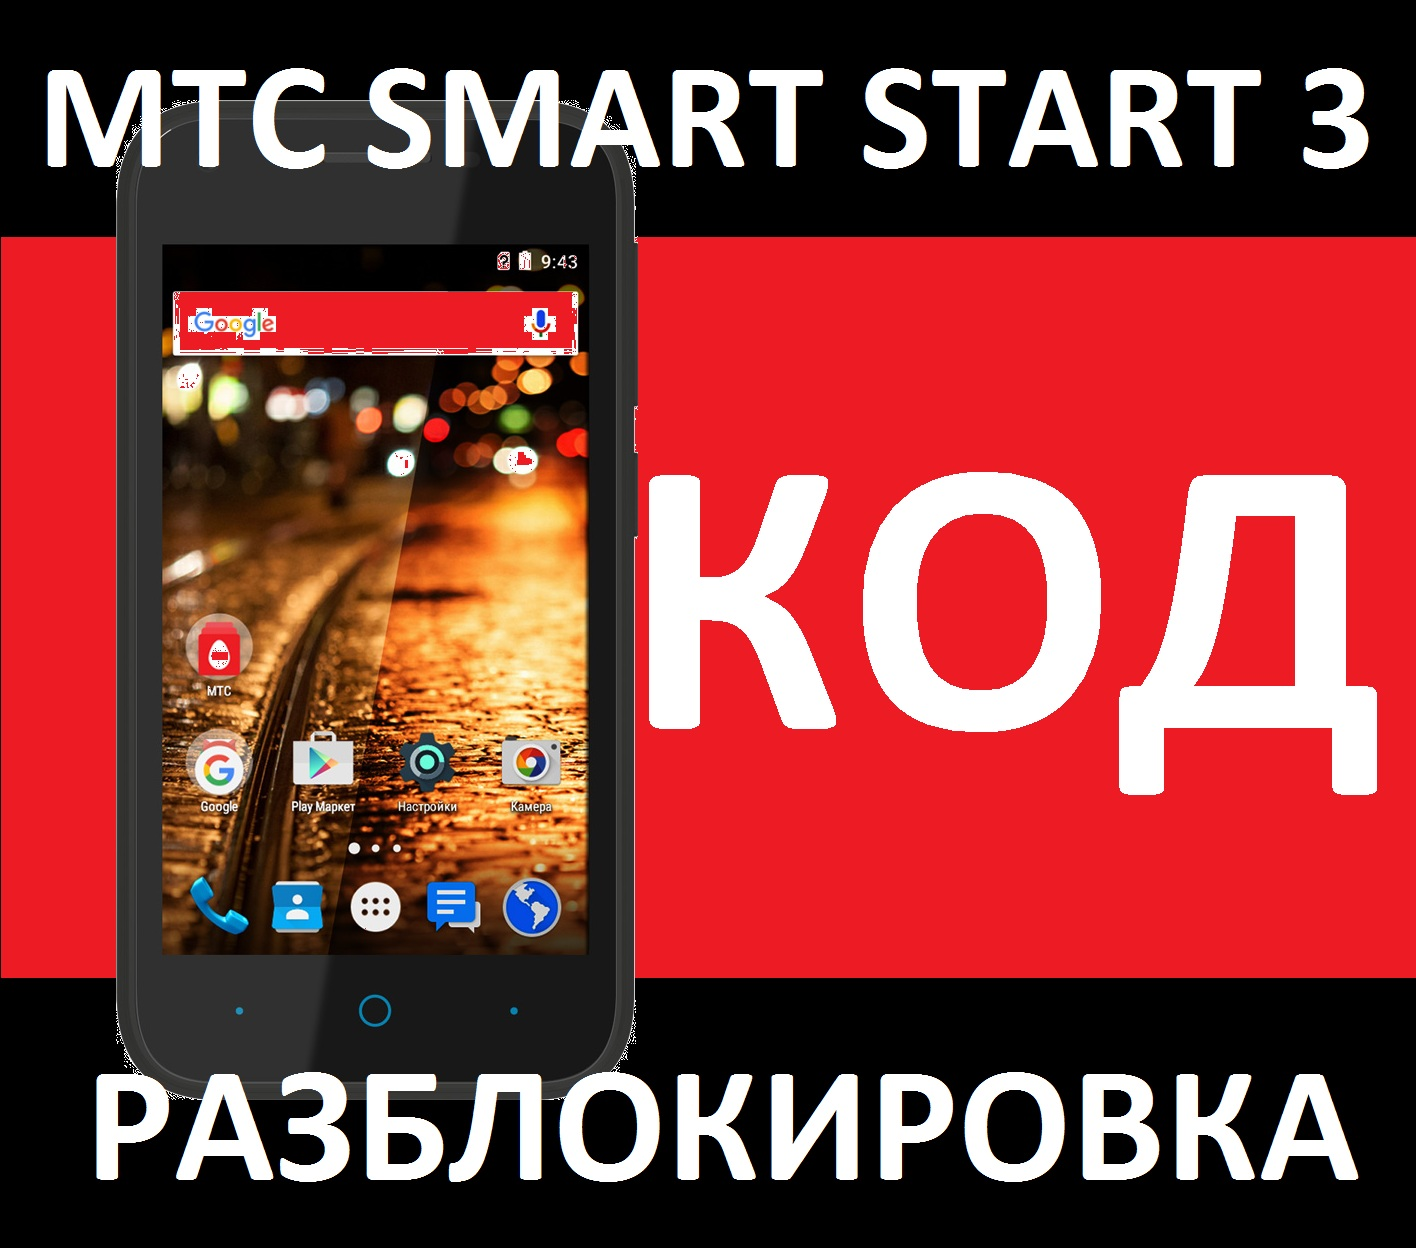 MTS SMART START 3 UNLOCK CODE NETWORK NCK unlock